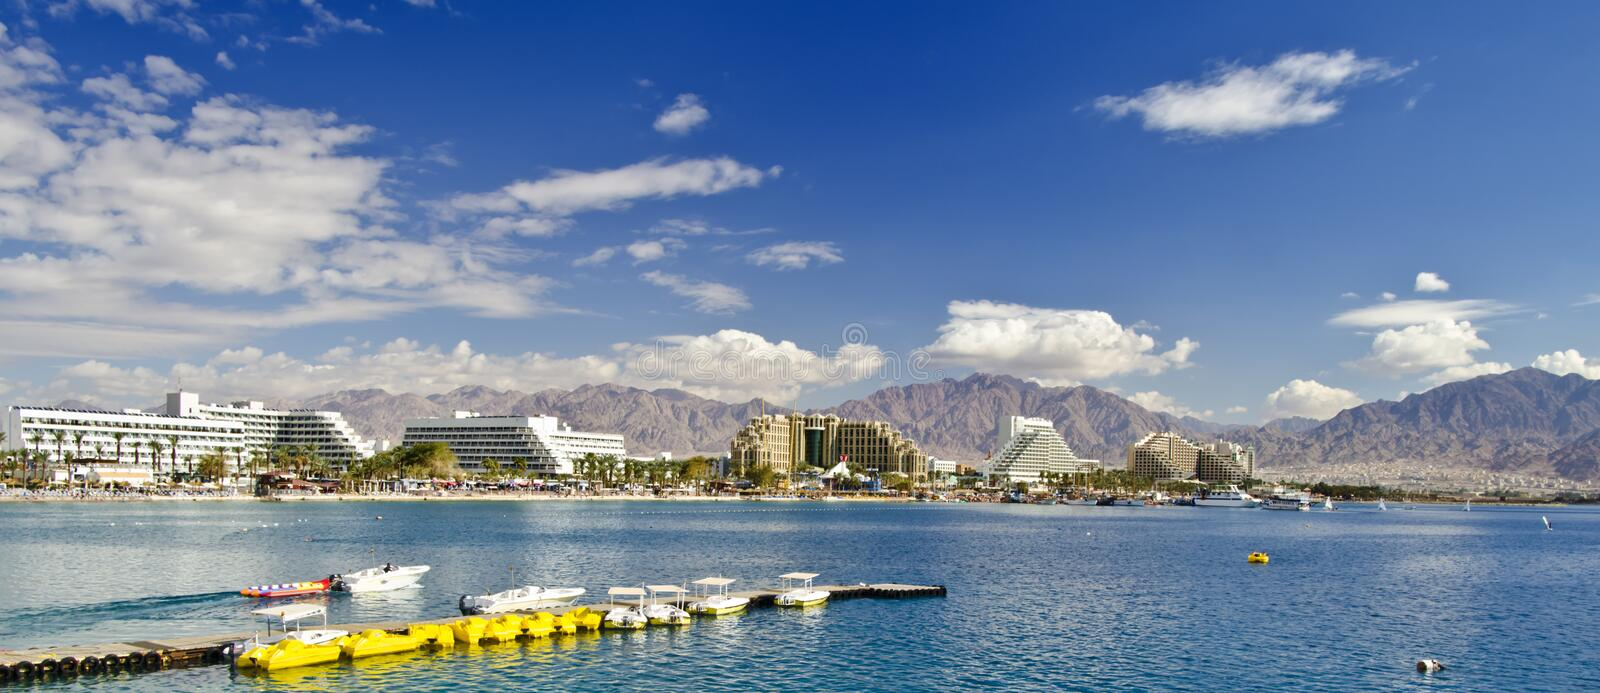 Panoramic view on Aqaba gulf, Eilat, Israel. The shot was taken from the northern beach of Eilat city - famous resort and recreation city in Israel royalty free stock photography